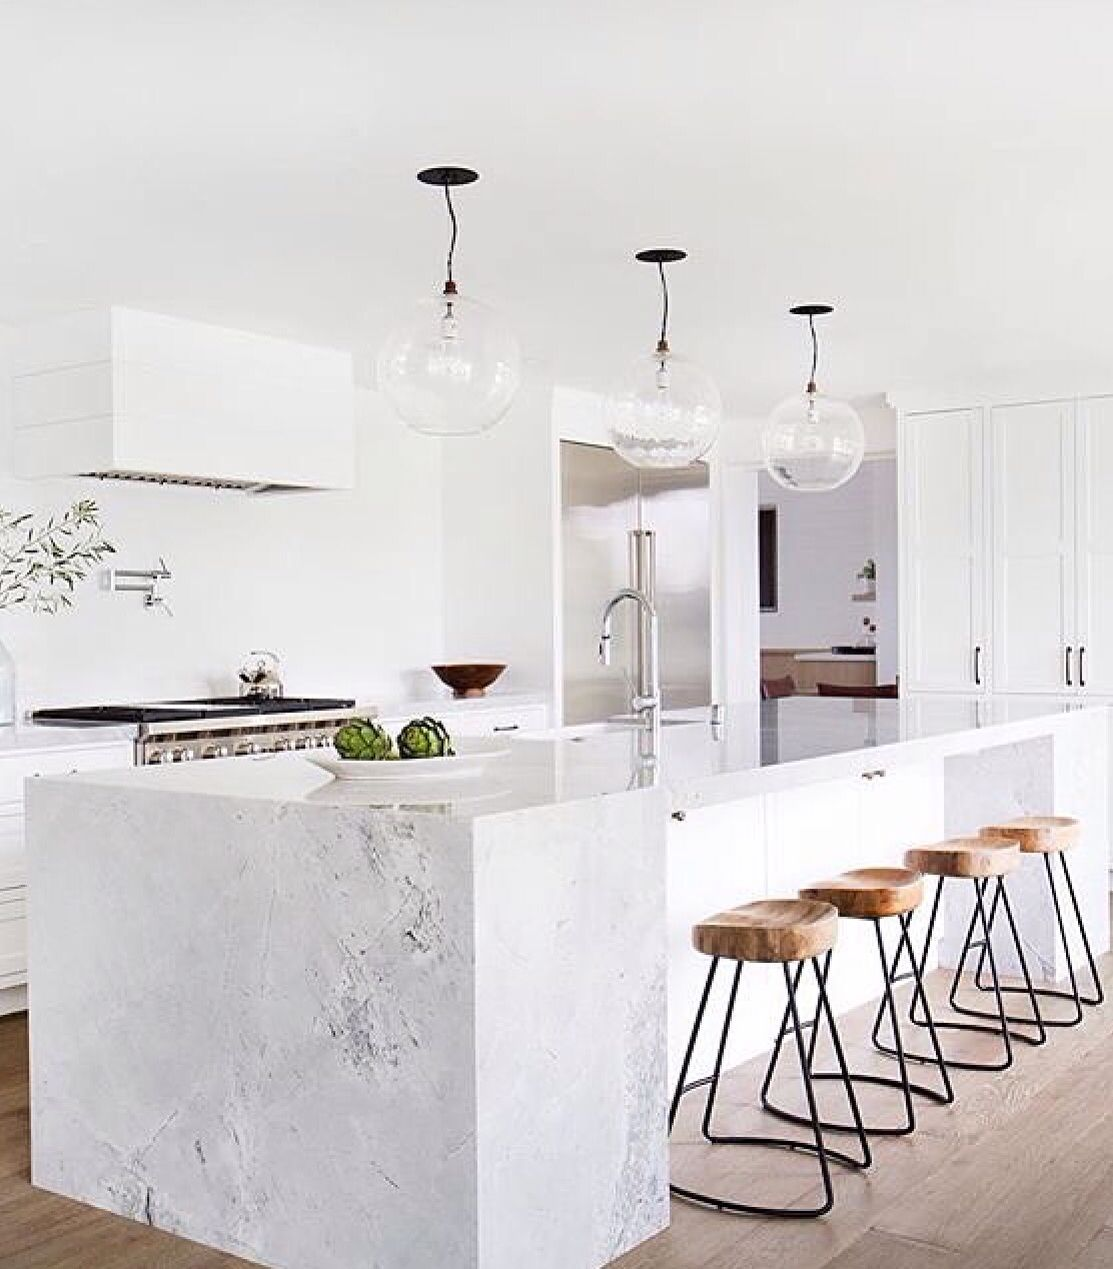 modern kitchen bar stools donate cabinets bright white https emfurn collections